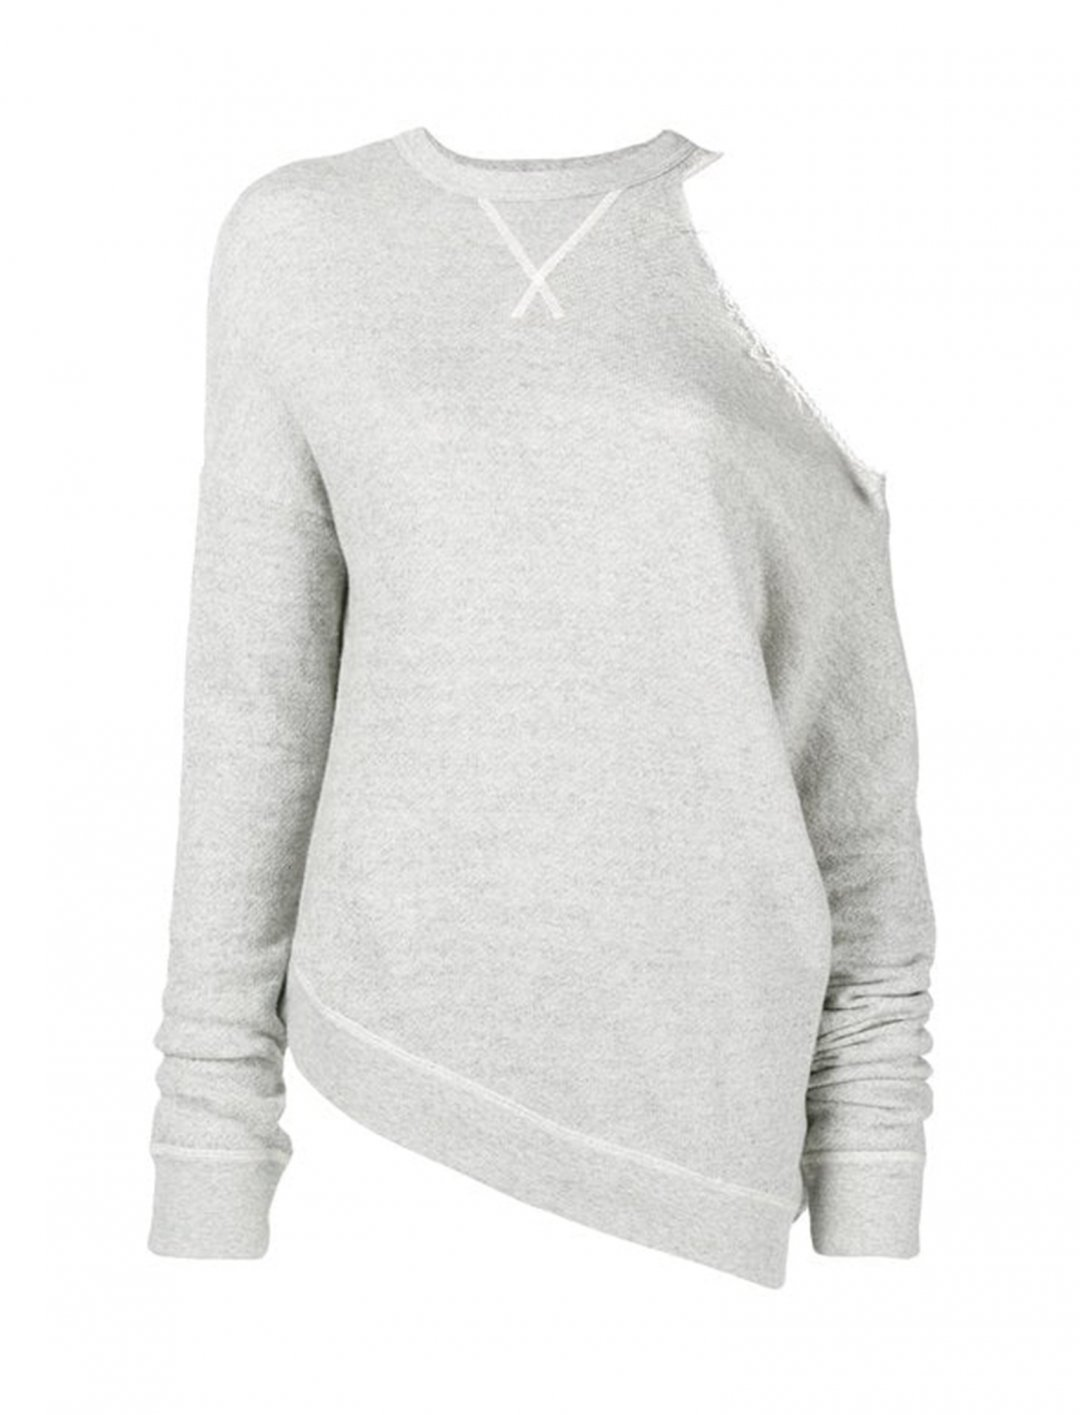 "H.E.R.'s Sweatshirt {""id"":5,""product_section_id"":1,""name"":""Clothing"",""order"":5} R13"